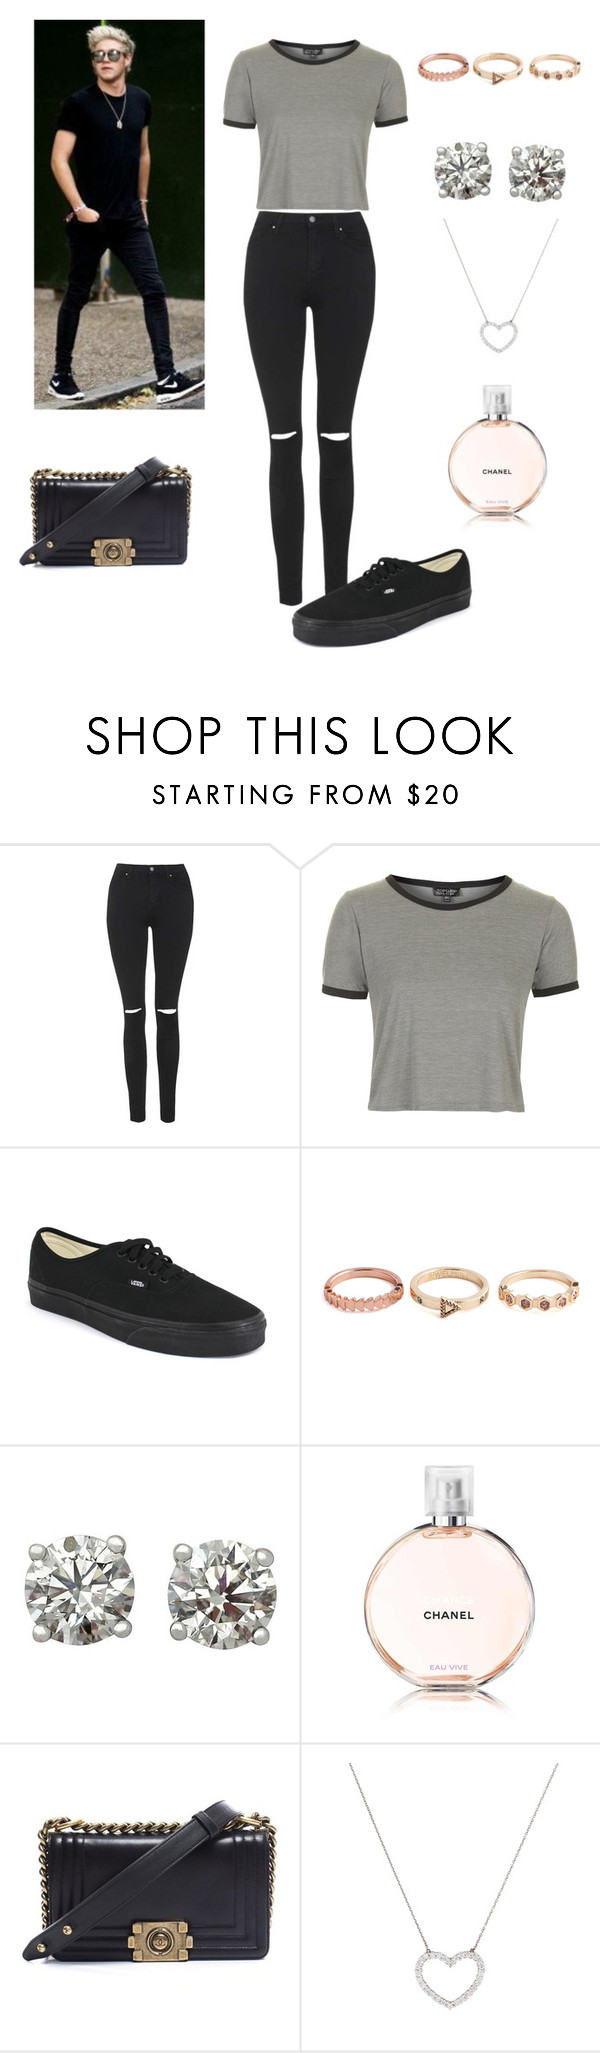 """""""wireless festival con Niall"""" by roldanroo ❤ liked on Polyvore featuring beauty, Topshop, Vans, Chanel and Tiffany & Co."""